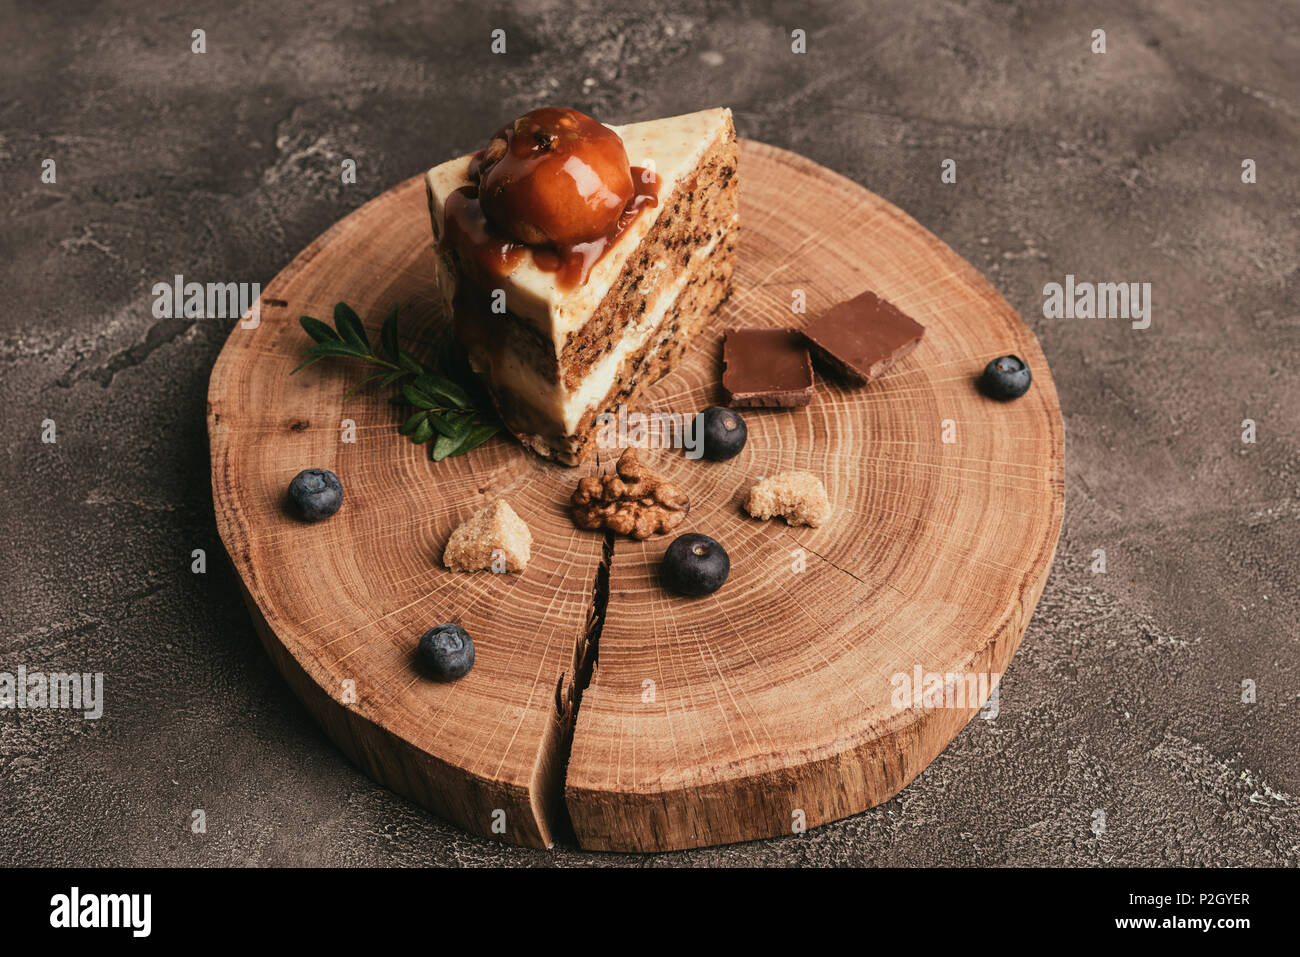 delicious piece of cake with chocolate and blueberries on wooden board - Stock Image